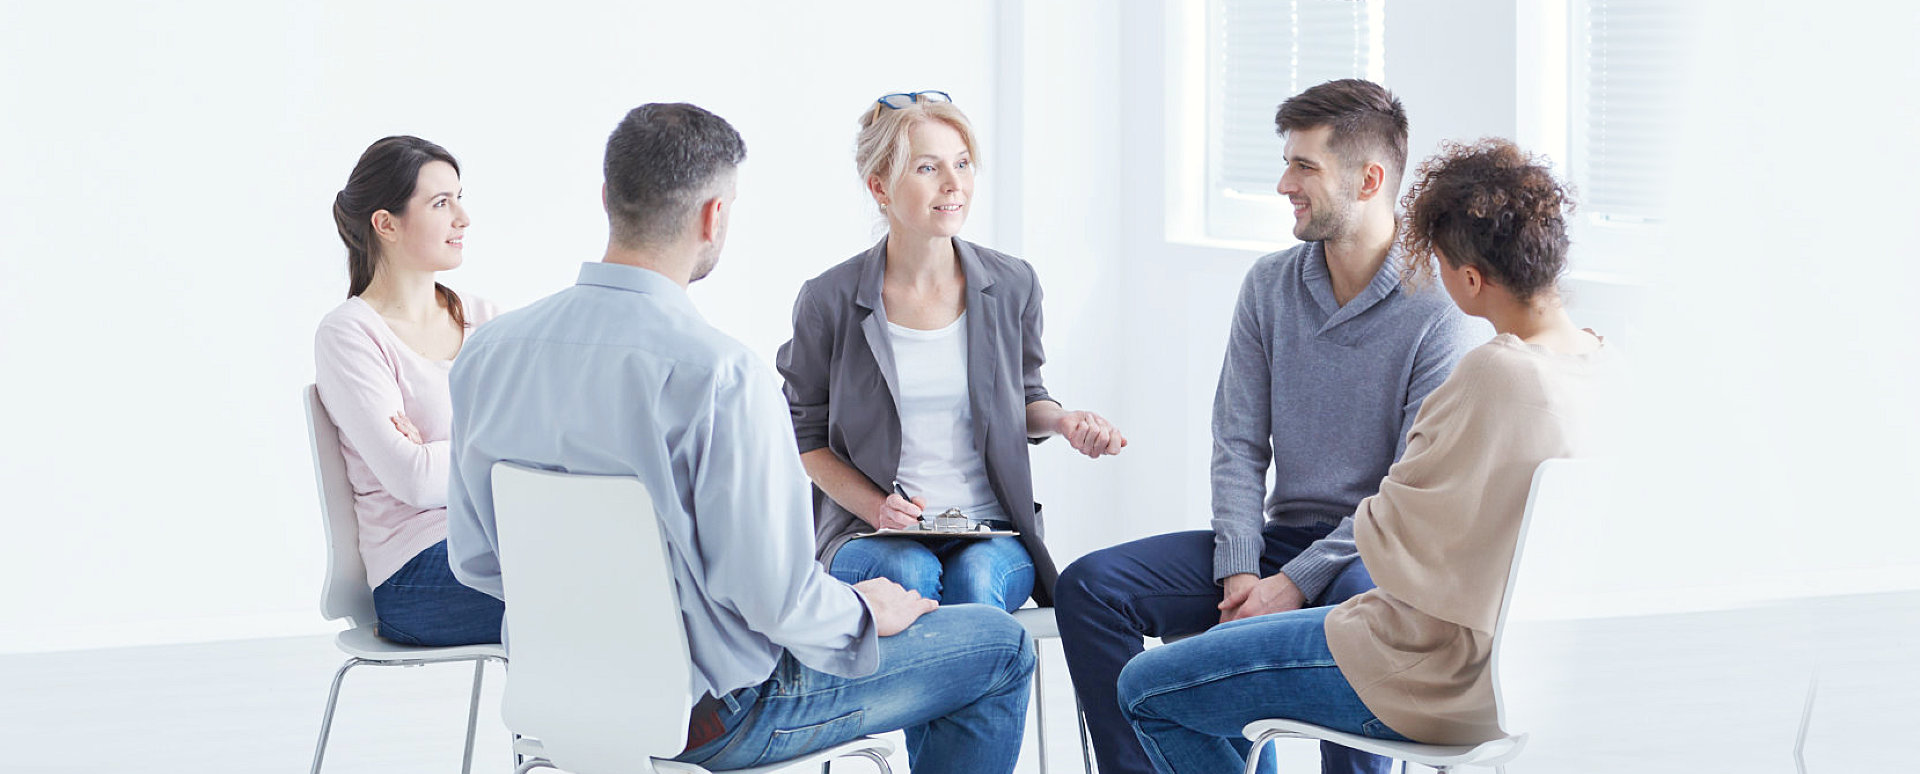 group of people doing counseling